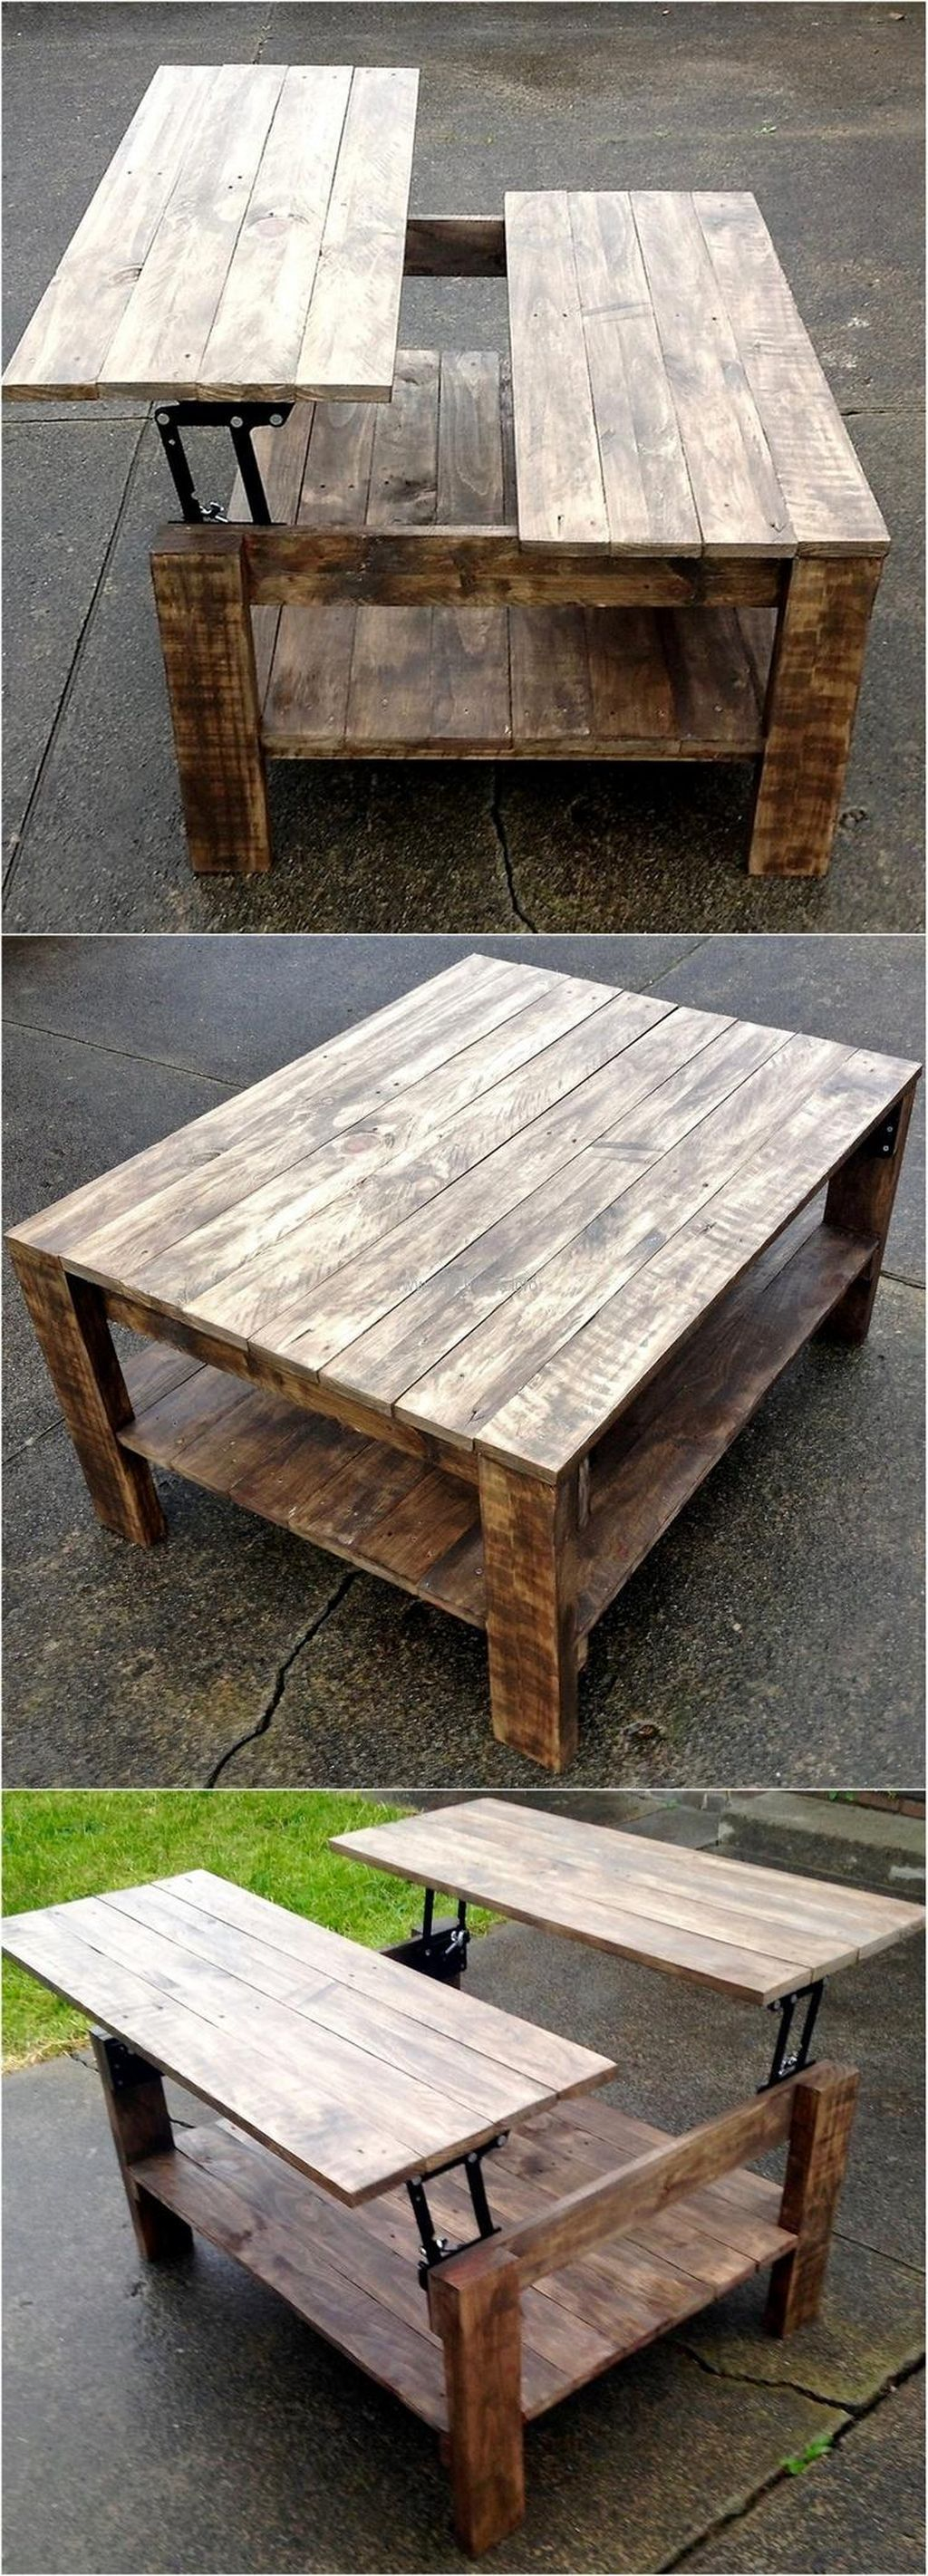 Amazing Pallet Furniture Project Ideas Budget 7 #